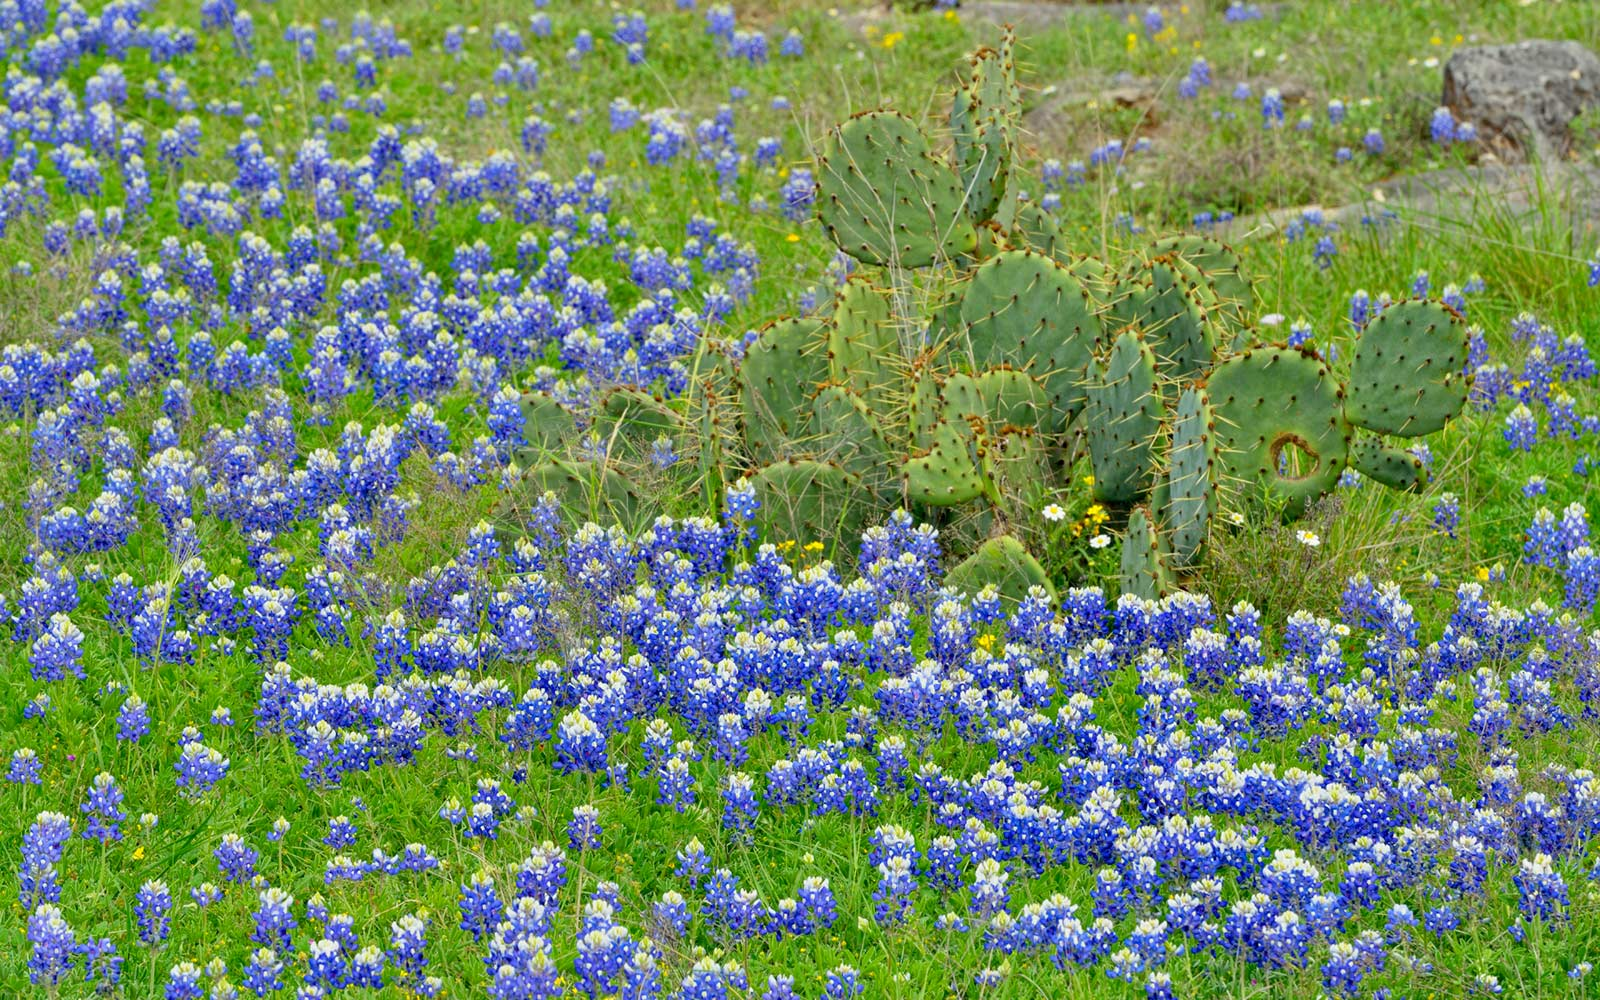 Bluebonnet Festival in Burnet, Texas